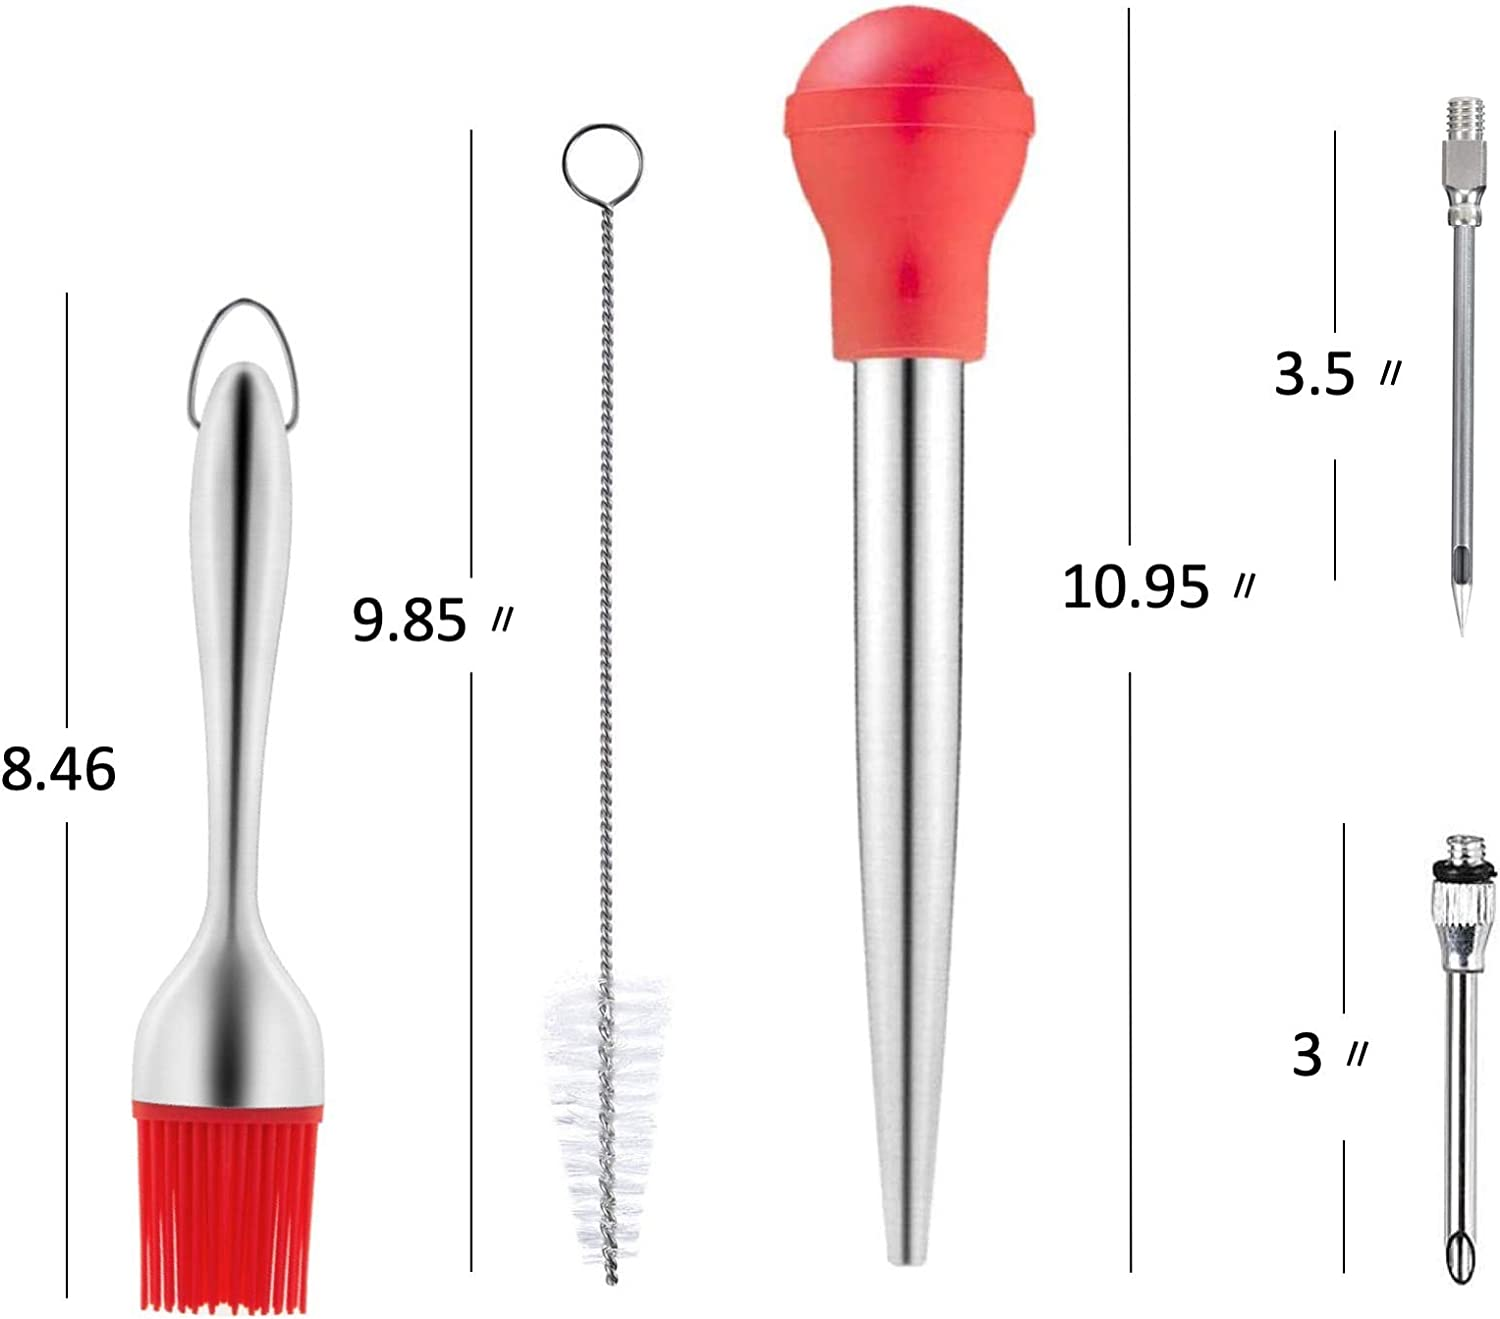 Thanksgiving Turkey Tool kit LaGoldoo Turkey Baster Set 5 Pcs Turkey Pump Flavour Injector; Silicone Oil Brush; Stainless Steel Turkey Baster Syringe and Pump Cleaning Brush for BBQ Grill Red